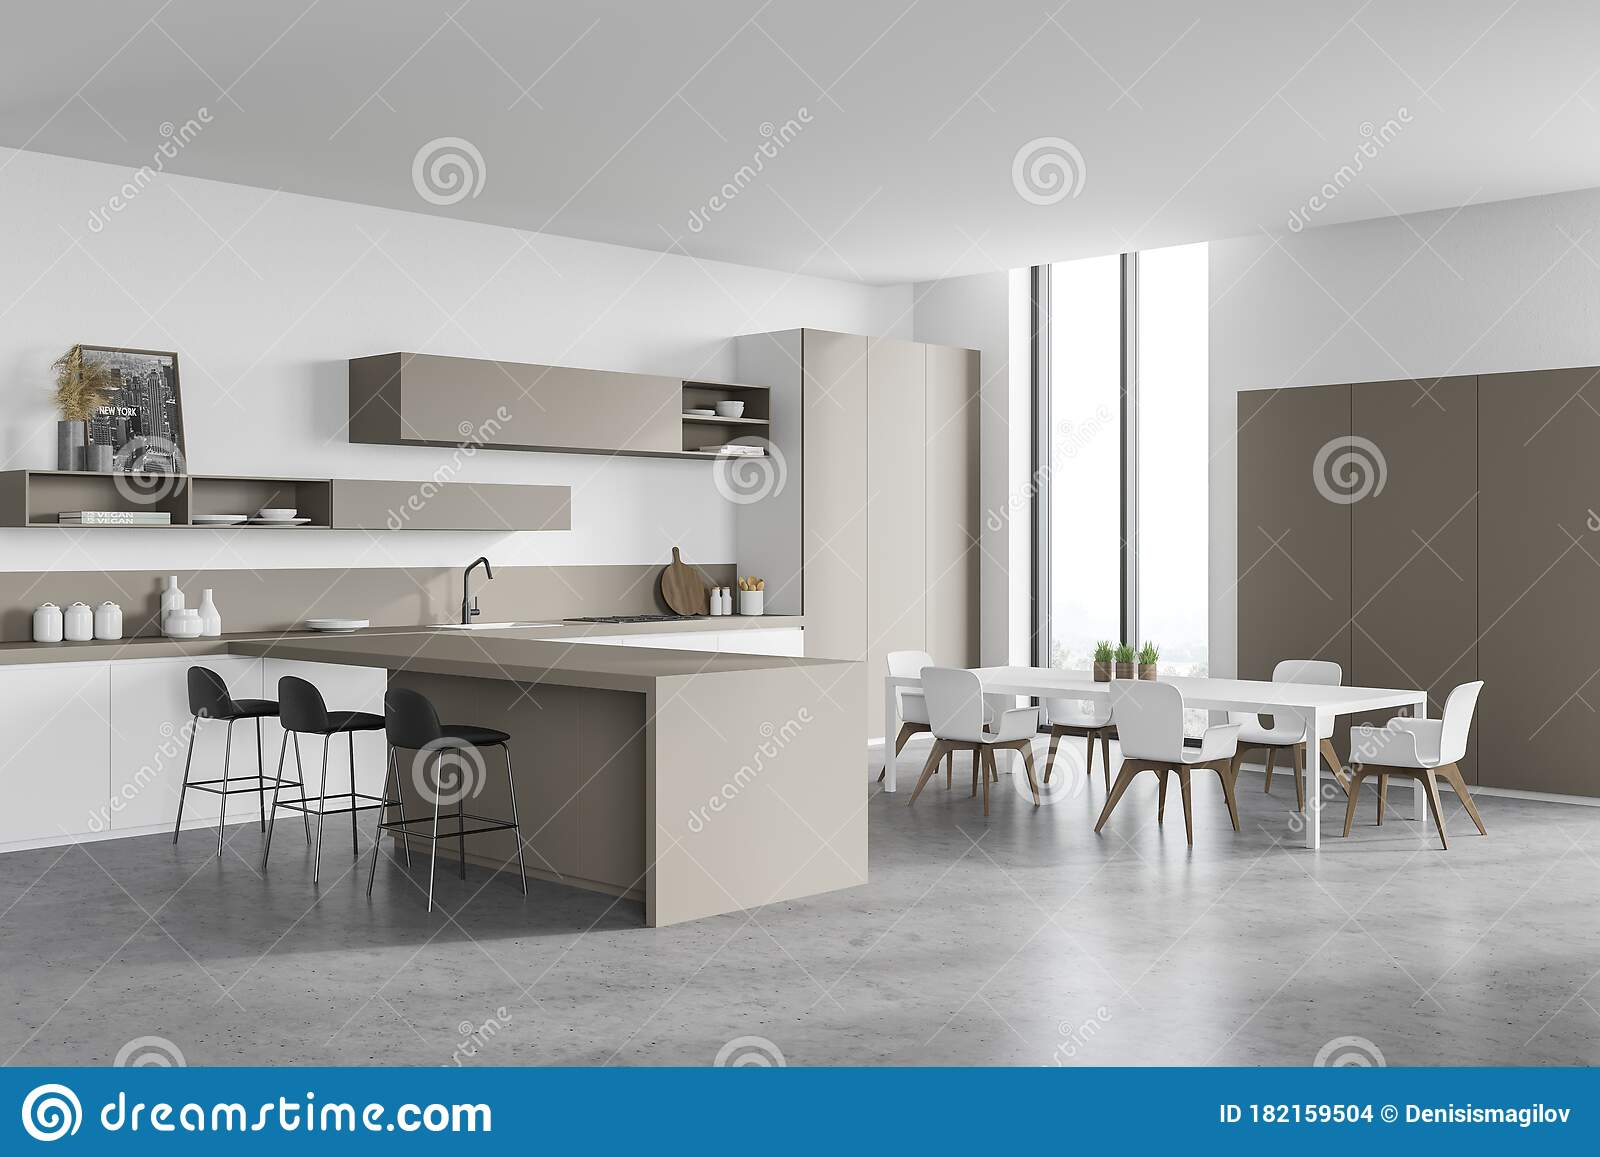 White And Beige Kitchen Corner With Bar And Table Stock Illustration Illustration Of Home Domestic 182159504